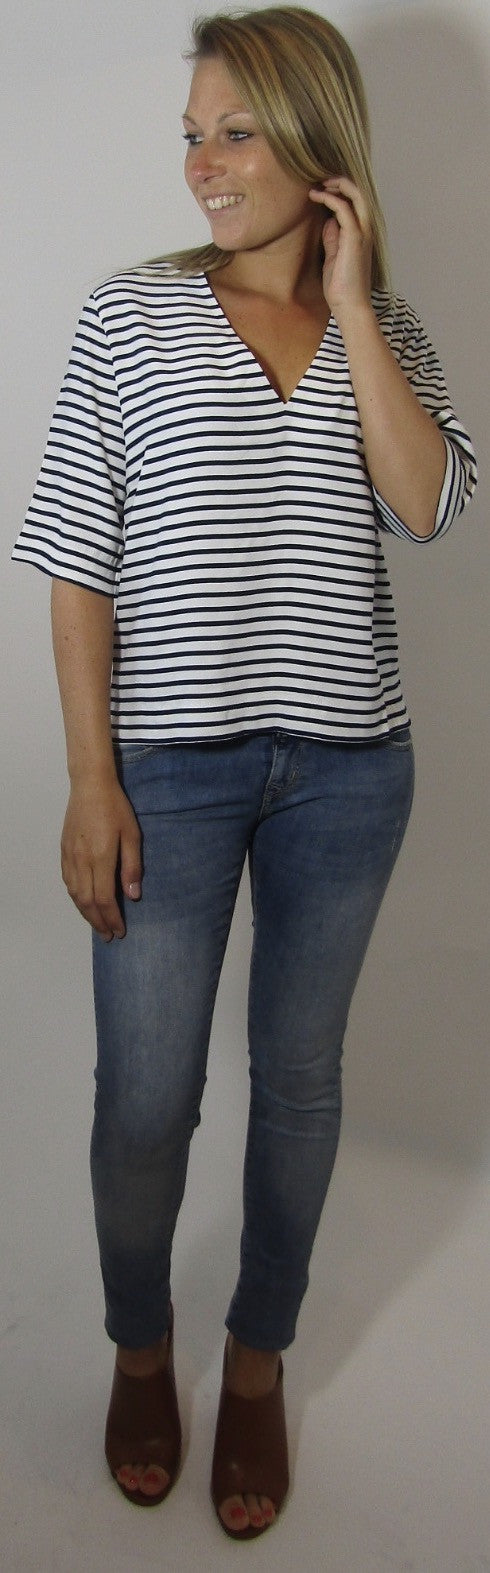 Linne Dark Blue Striped Shirt